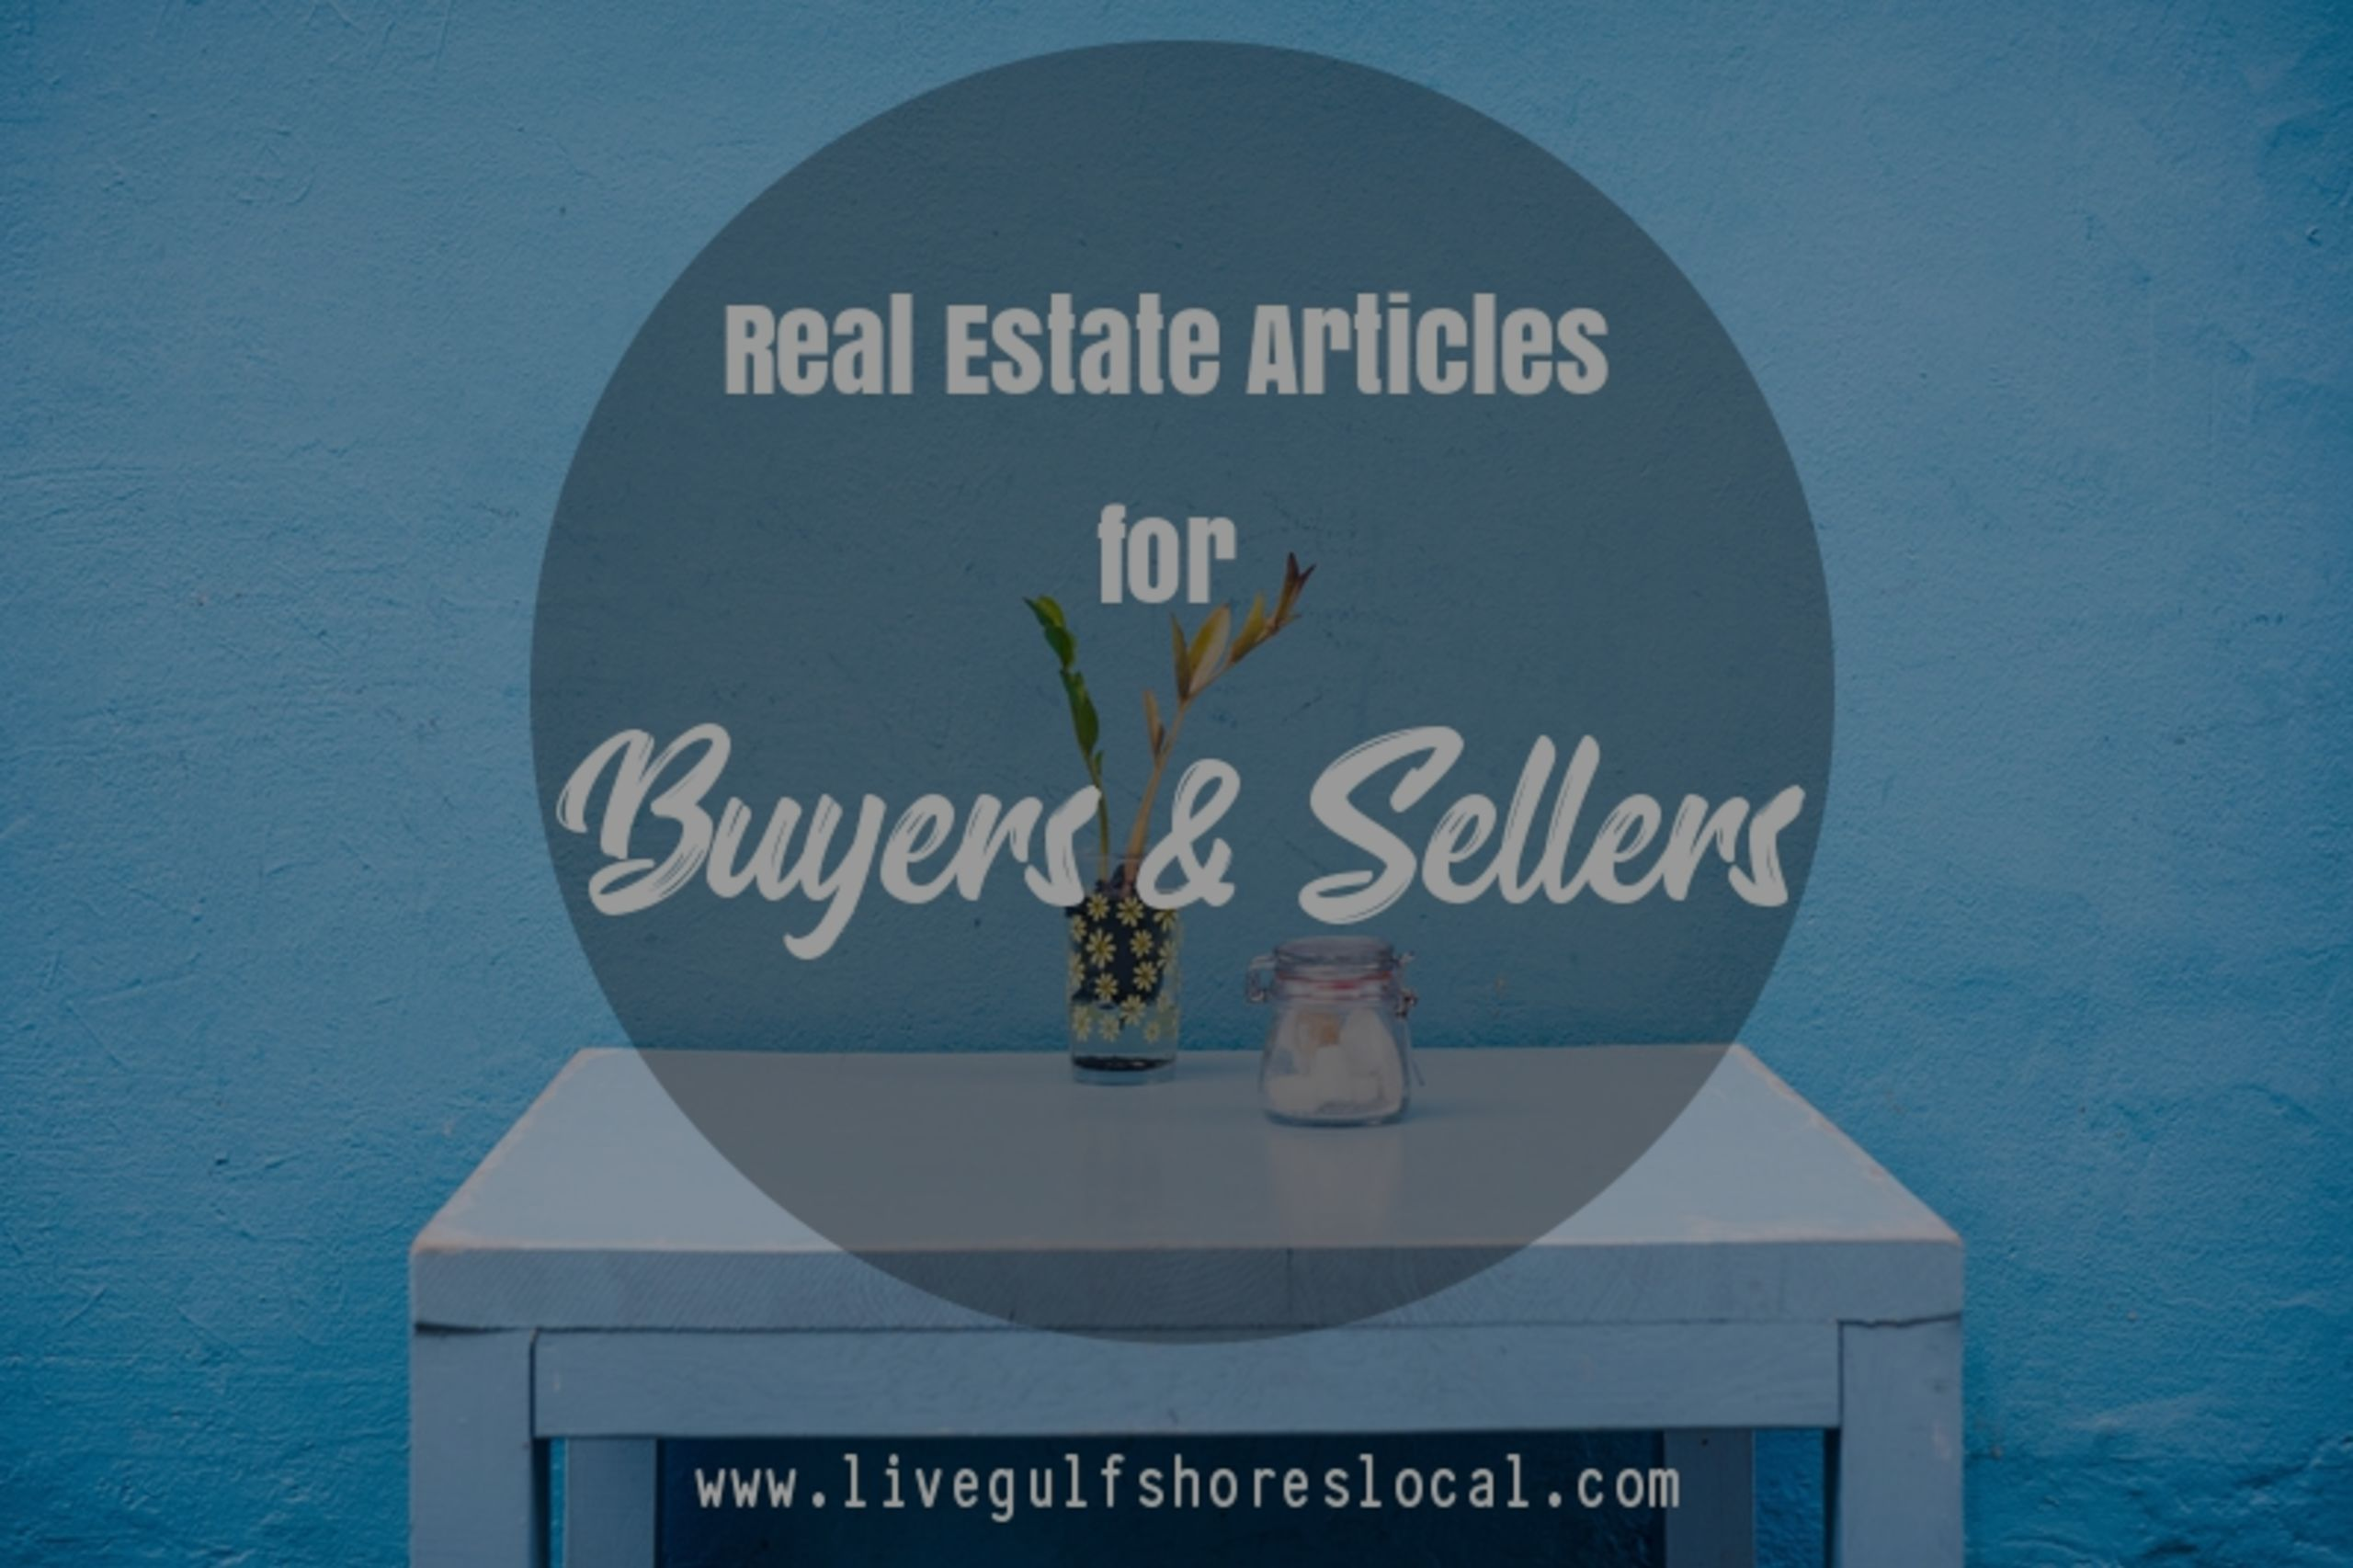 Real Estate Articles for Baldwin County Buyers and Sellers